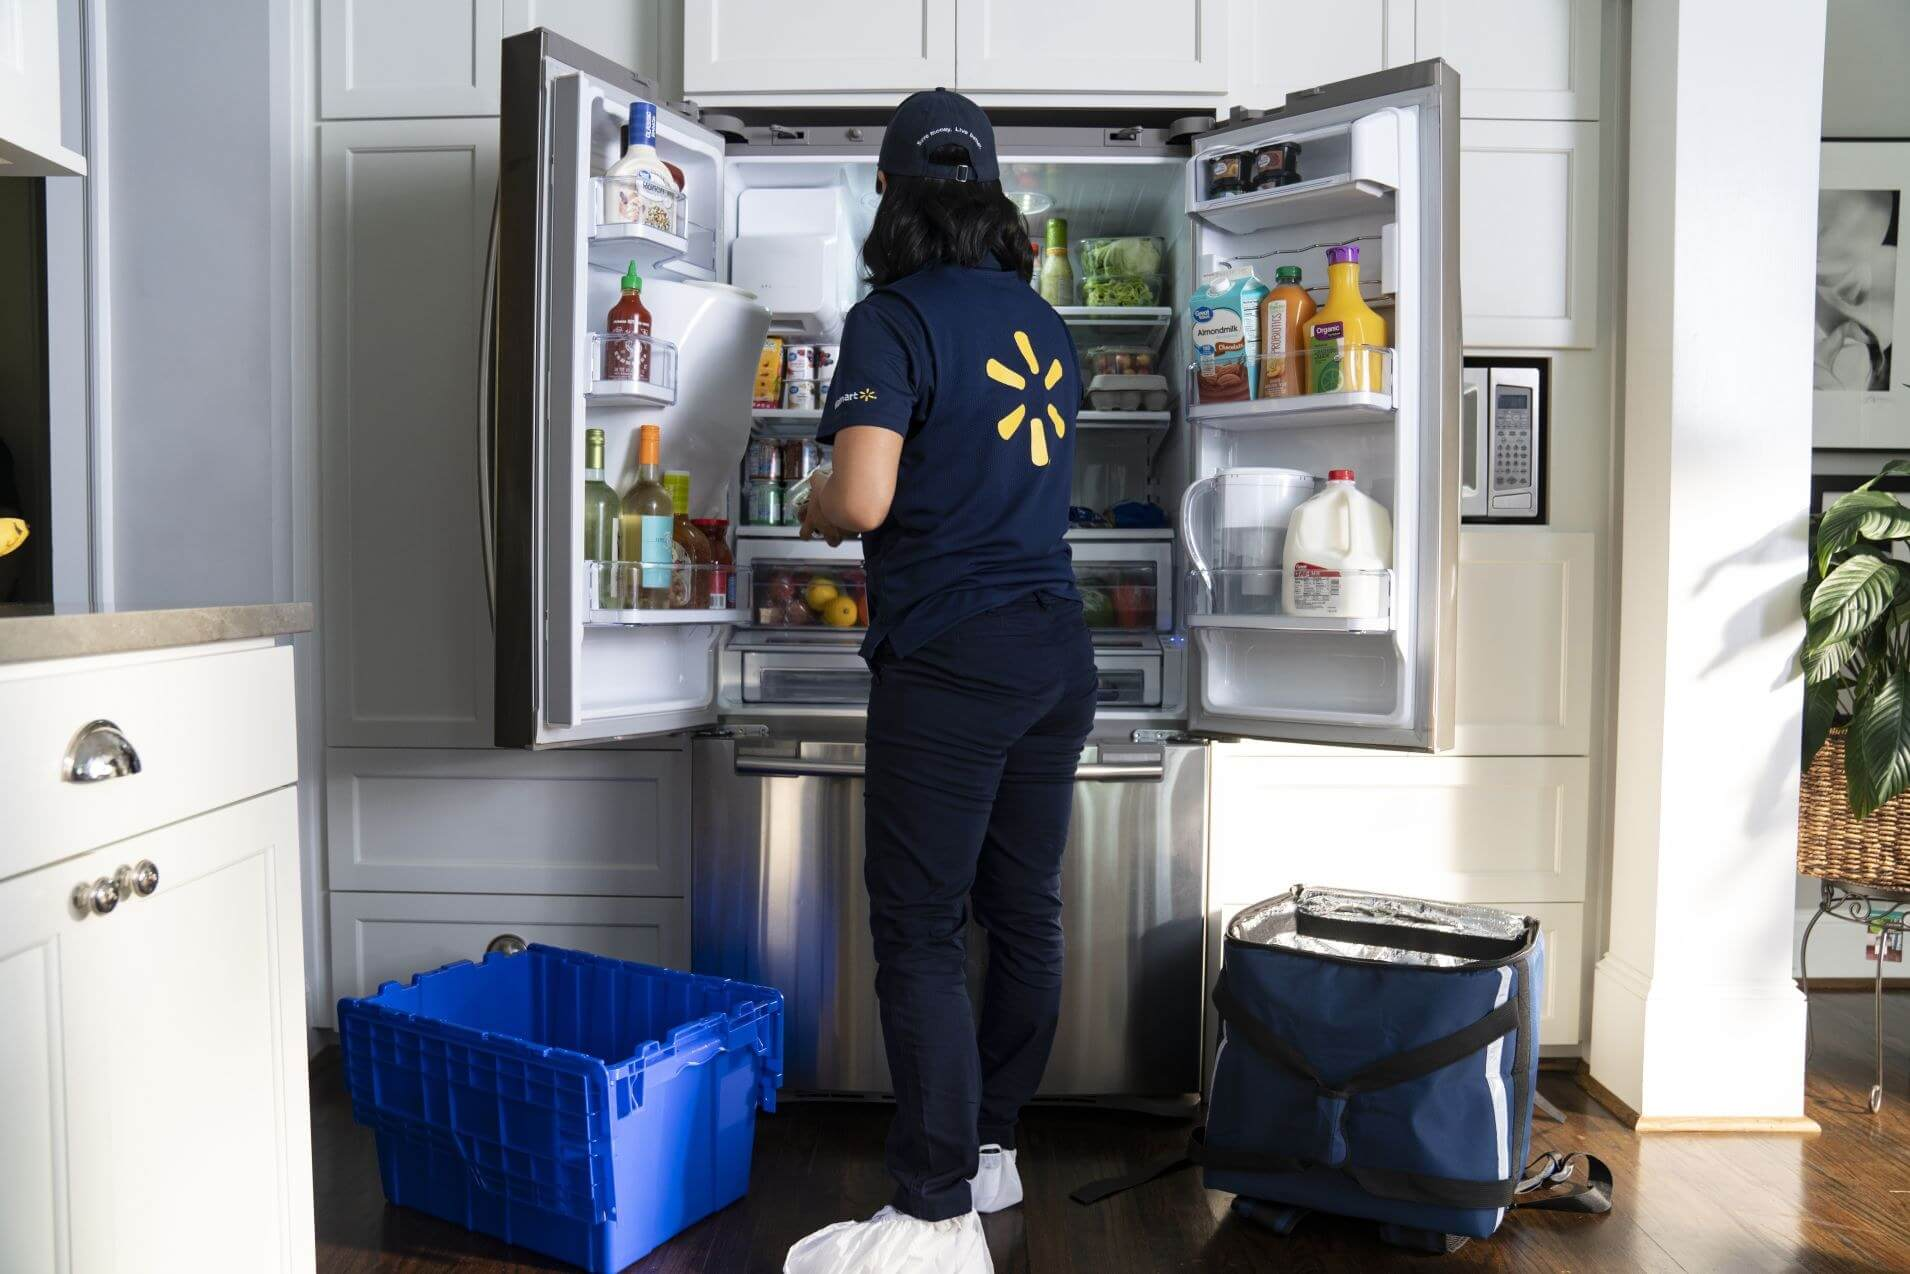 Walmart employees to deliver groceries inside your fridge when you're not home